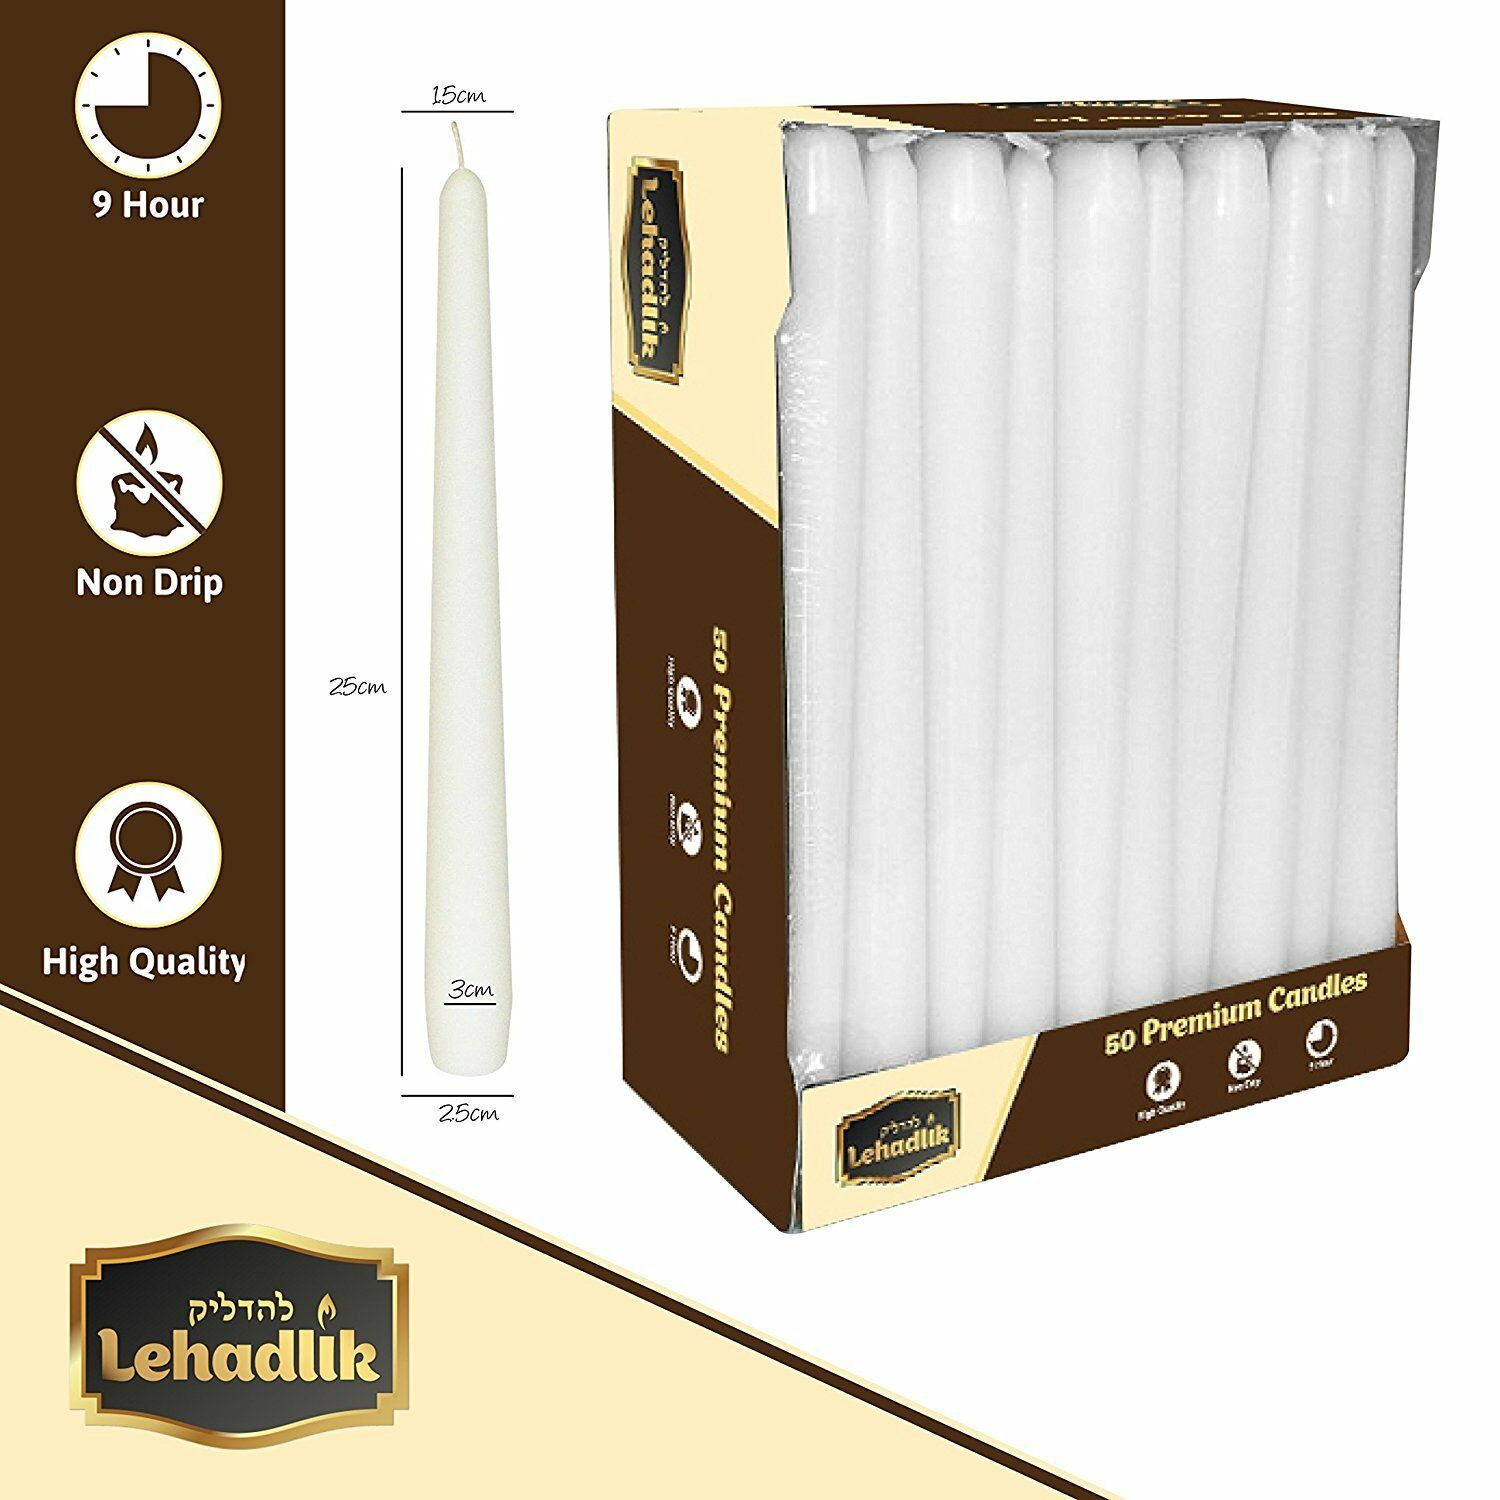 High Quality Unscented Bistro Tapered 50 x 25cm White Dinner Food Table Candles 8-9 Hours Burn Time High Quality for Home/Events/Restaurant/Wedding/Party